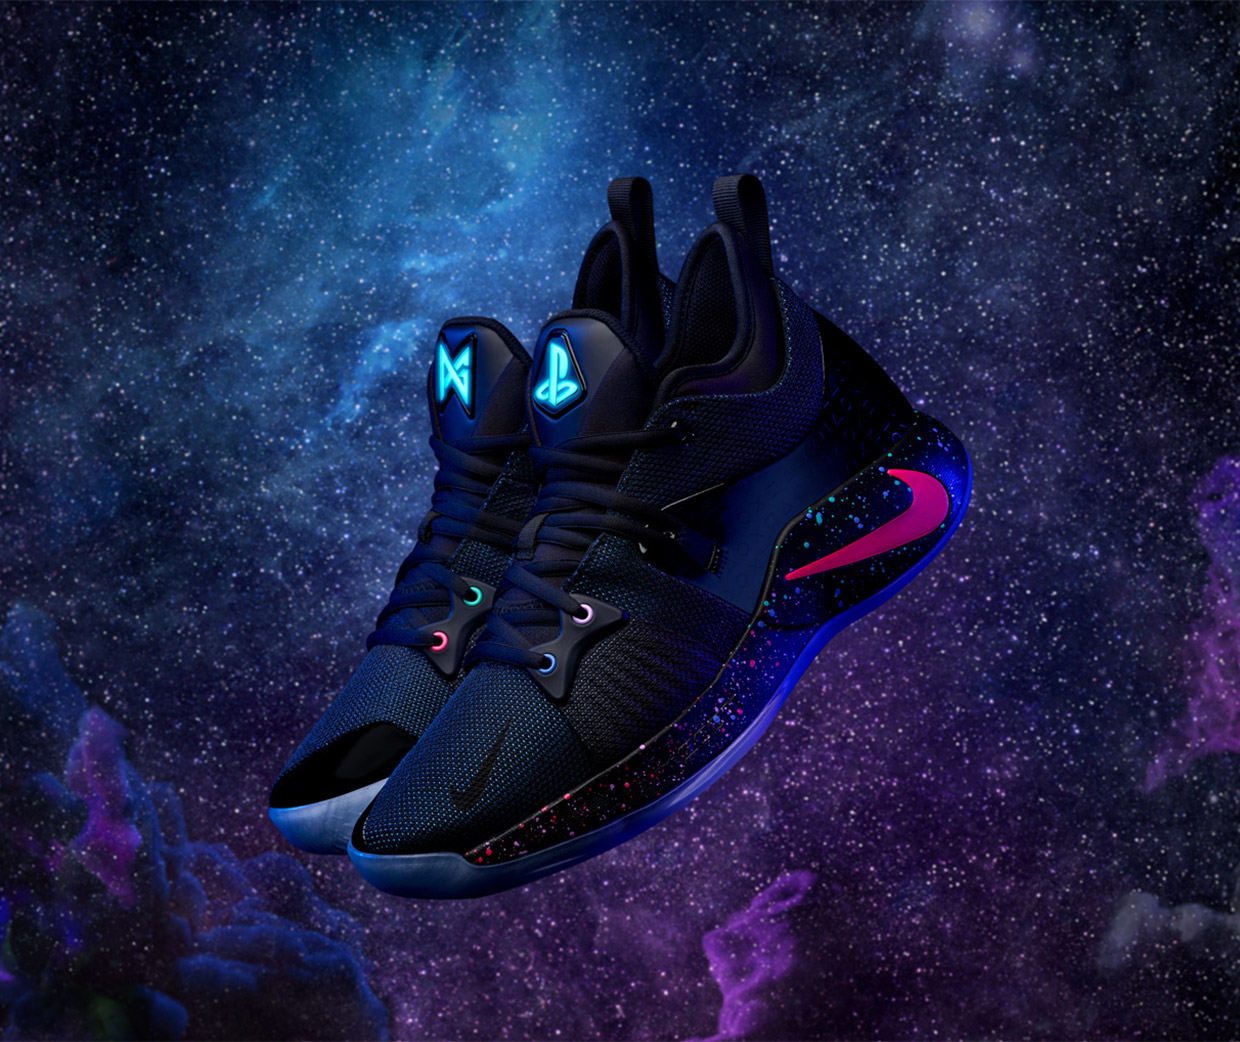 Introducing the PG-2 PlayStation Colorway